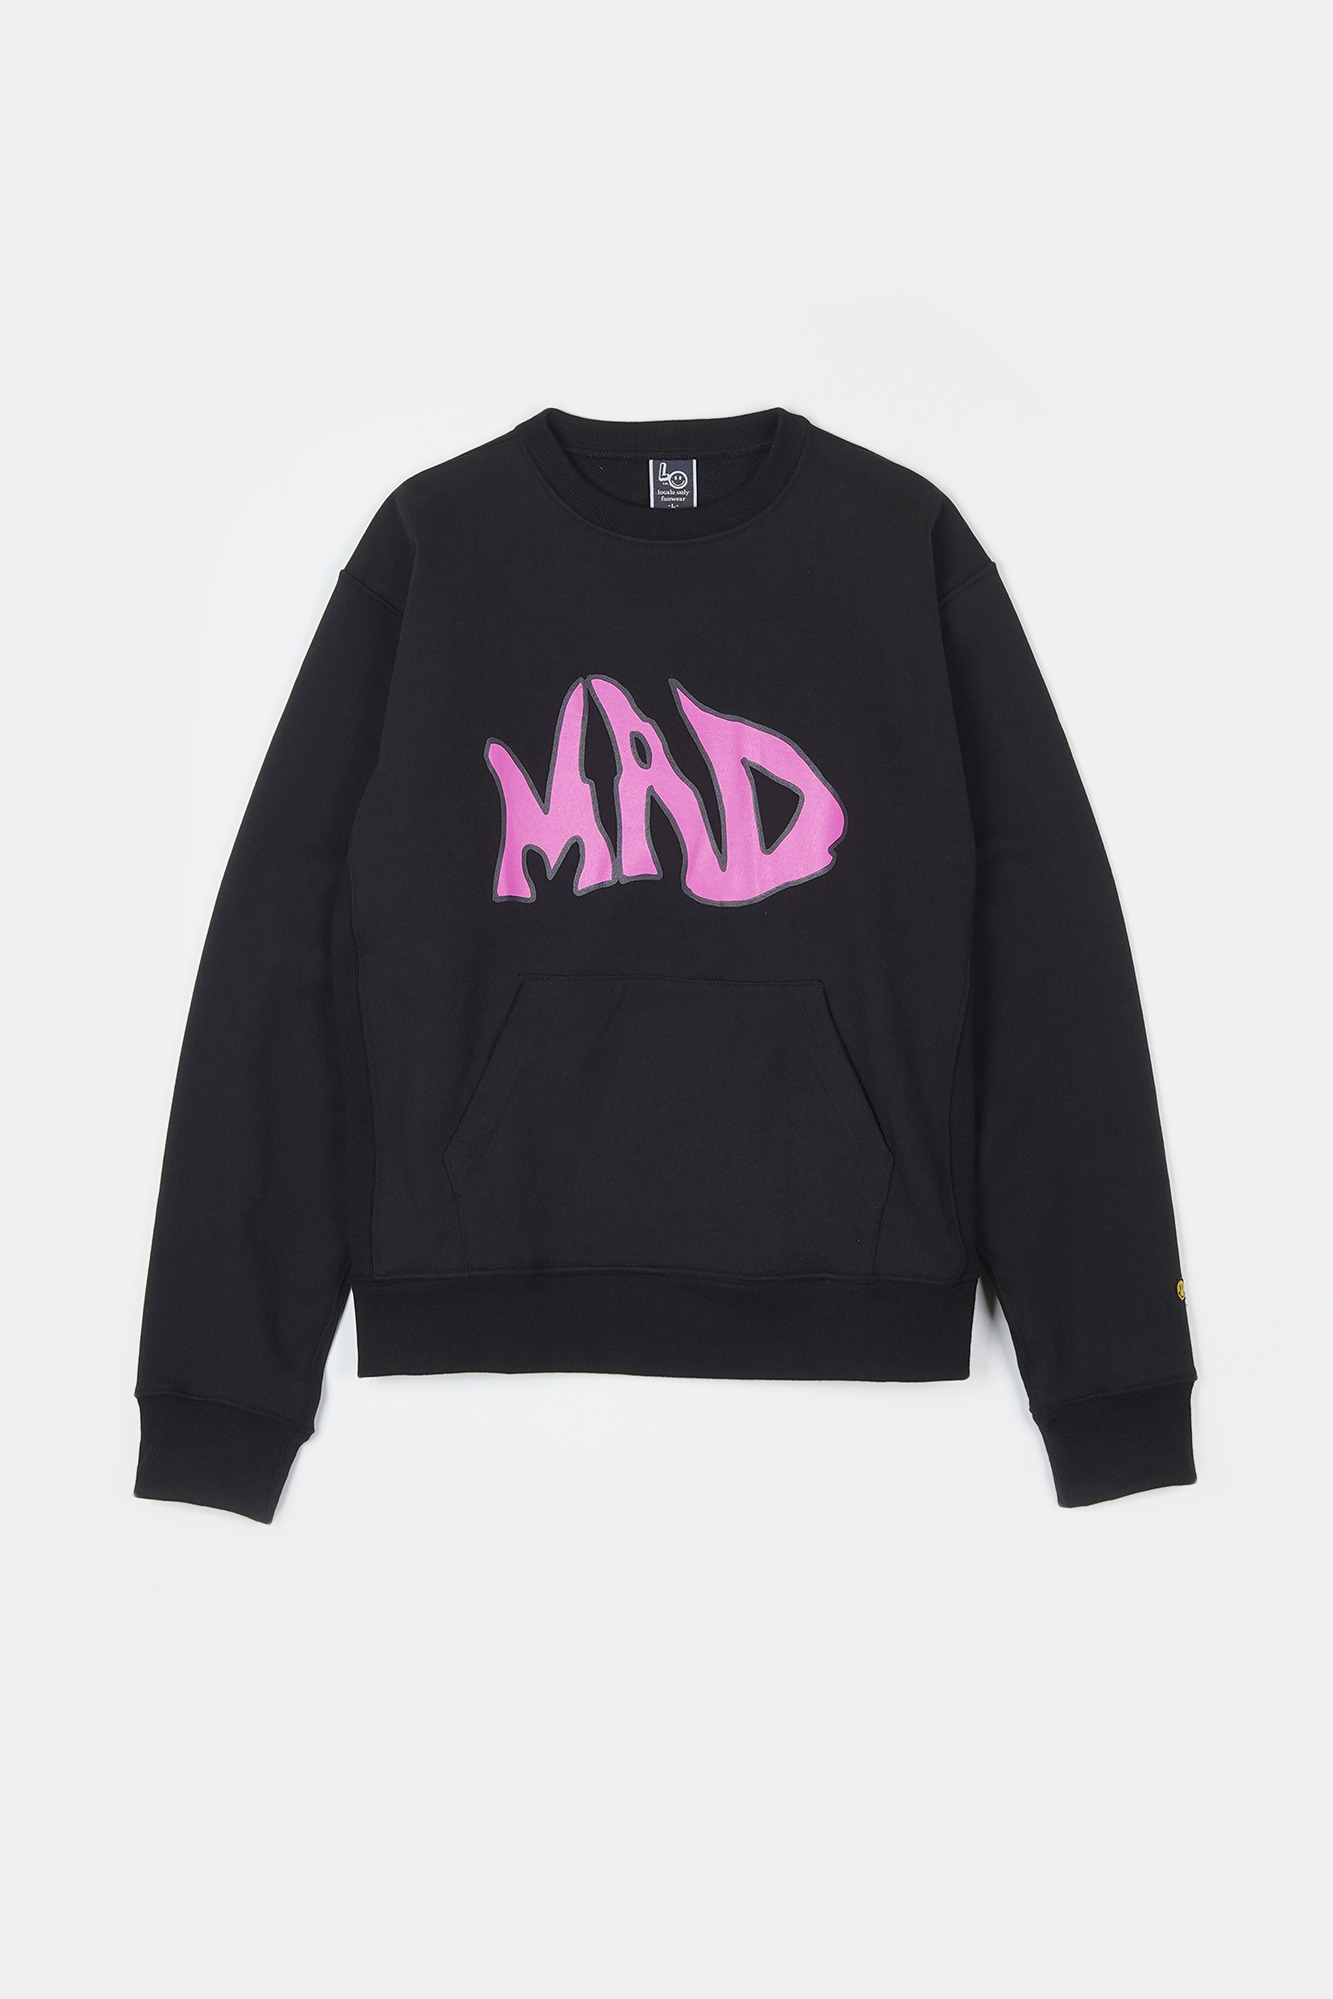 "LOCALS ONLY MAD Pocket Sweat Shirts ""Black"""